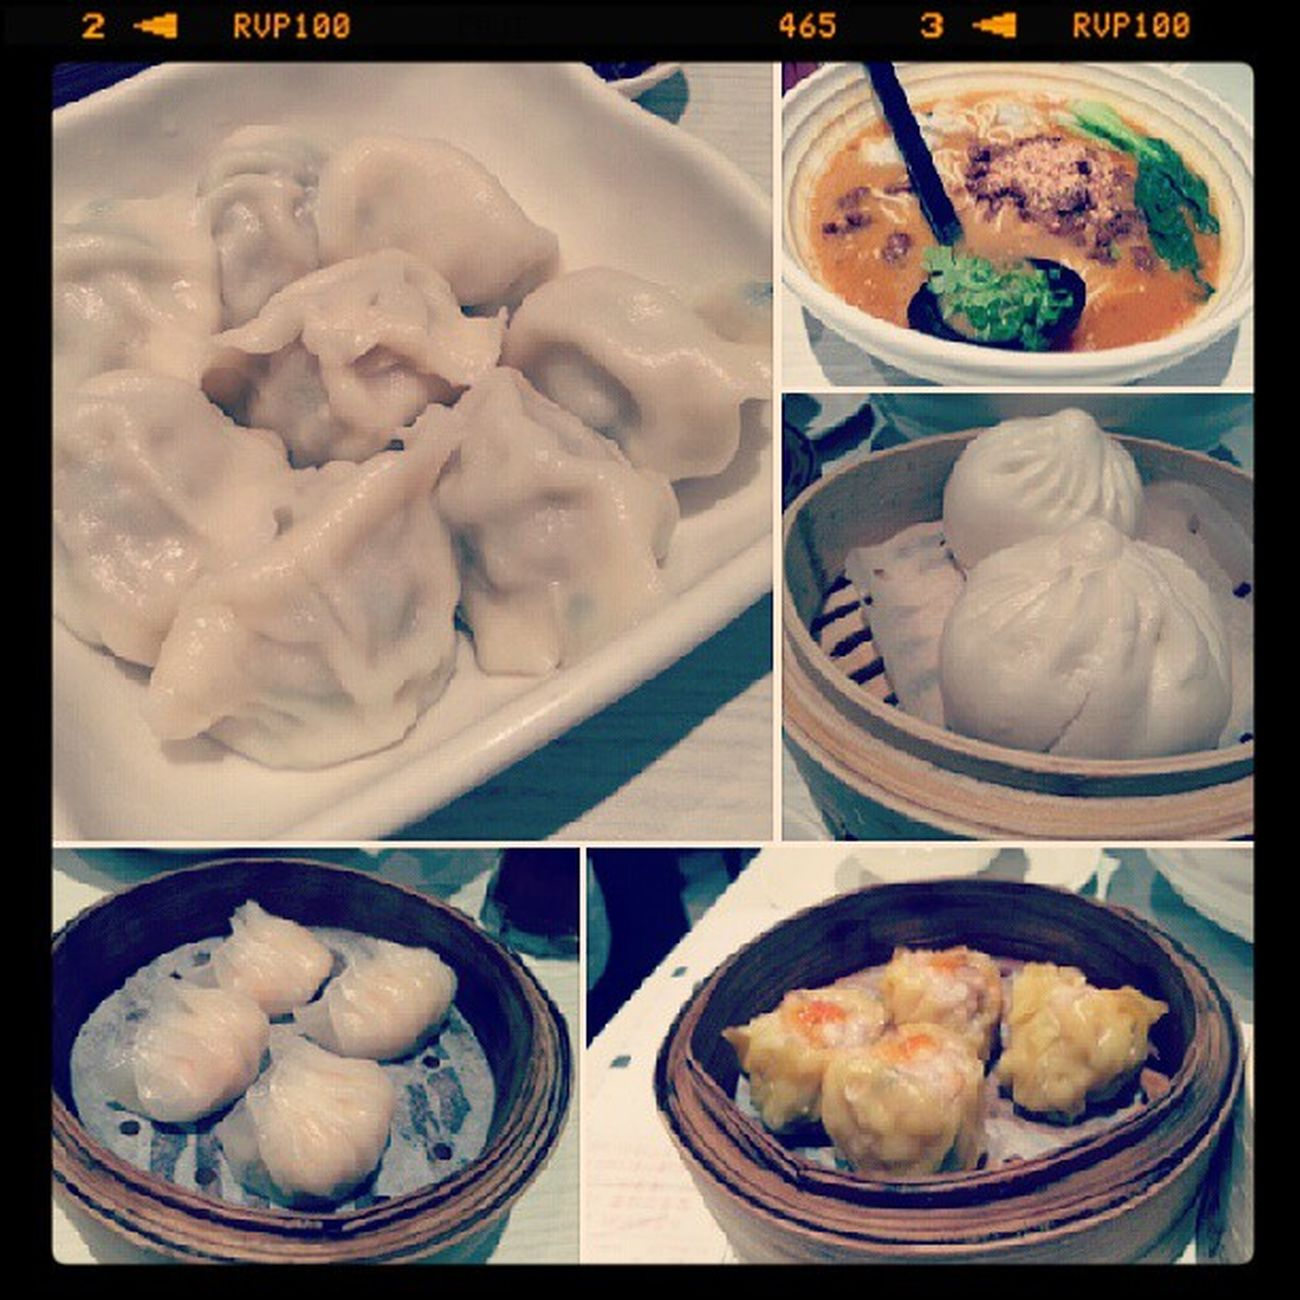 Chinese cuisine for lunch with @jyangsaw Crystaljade YumYum Lamian Dimsum